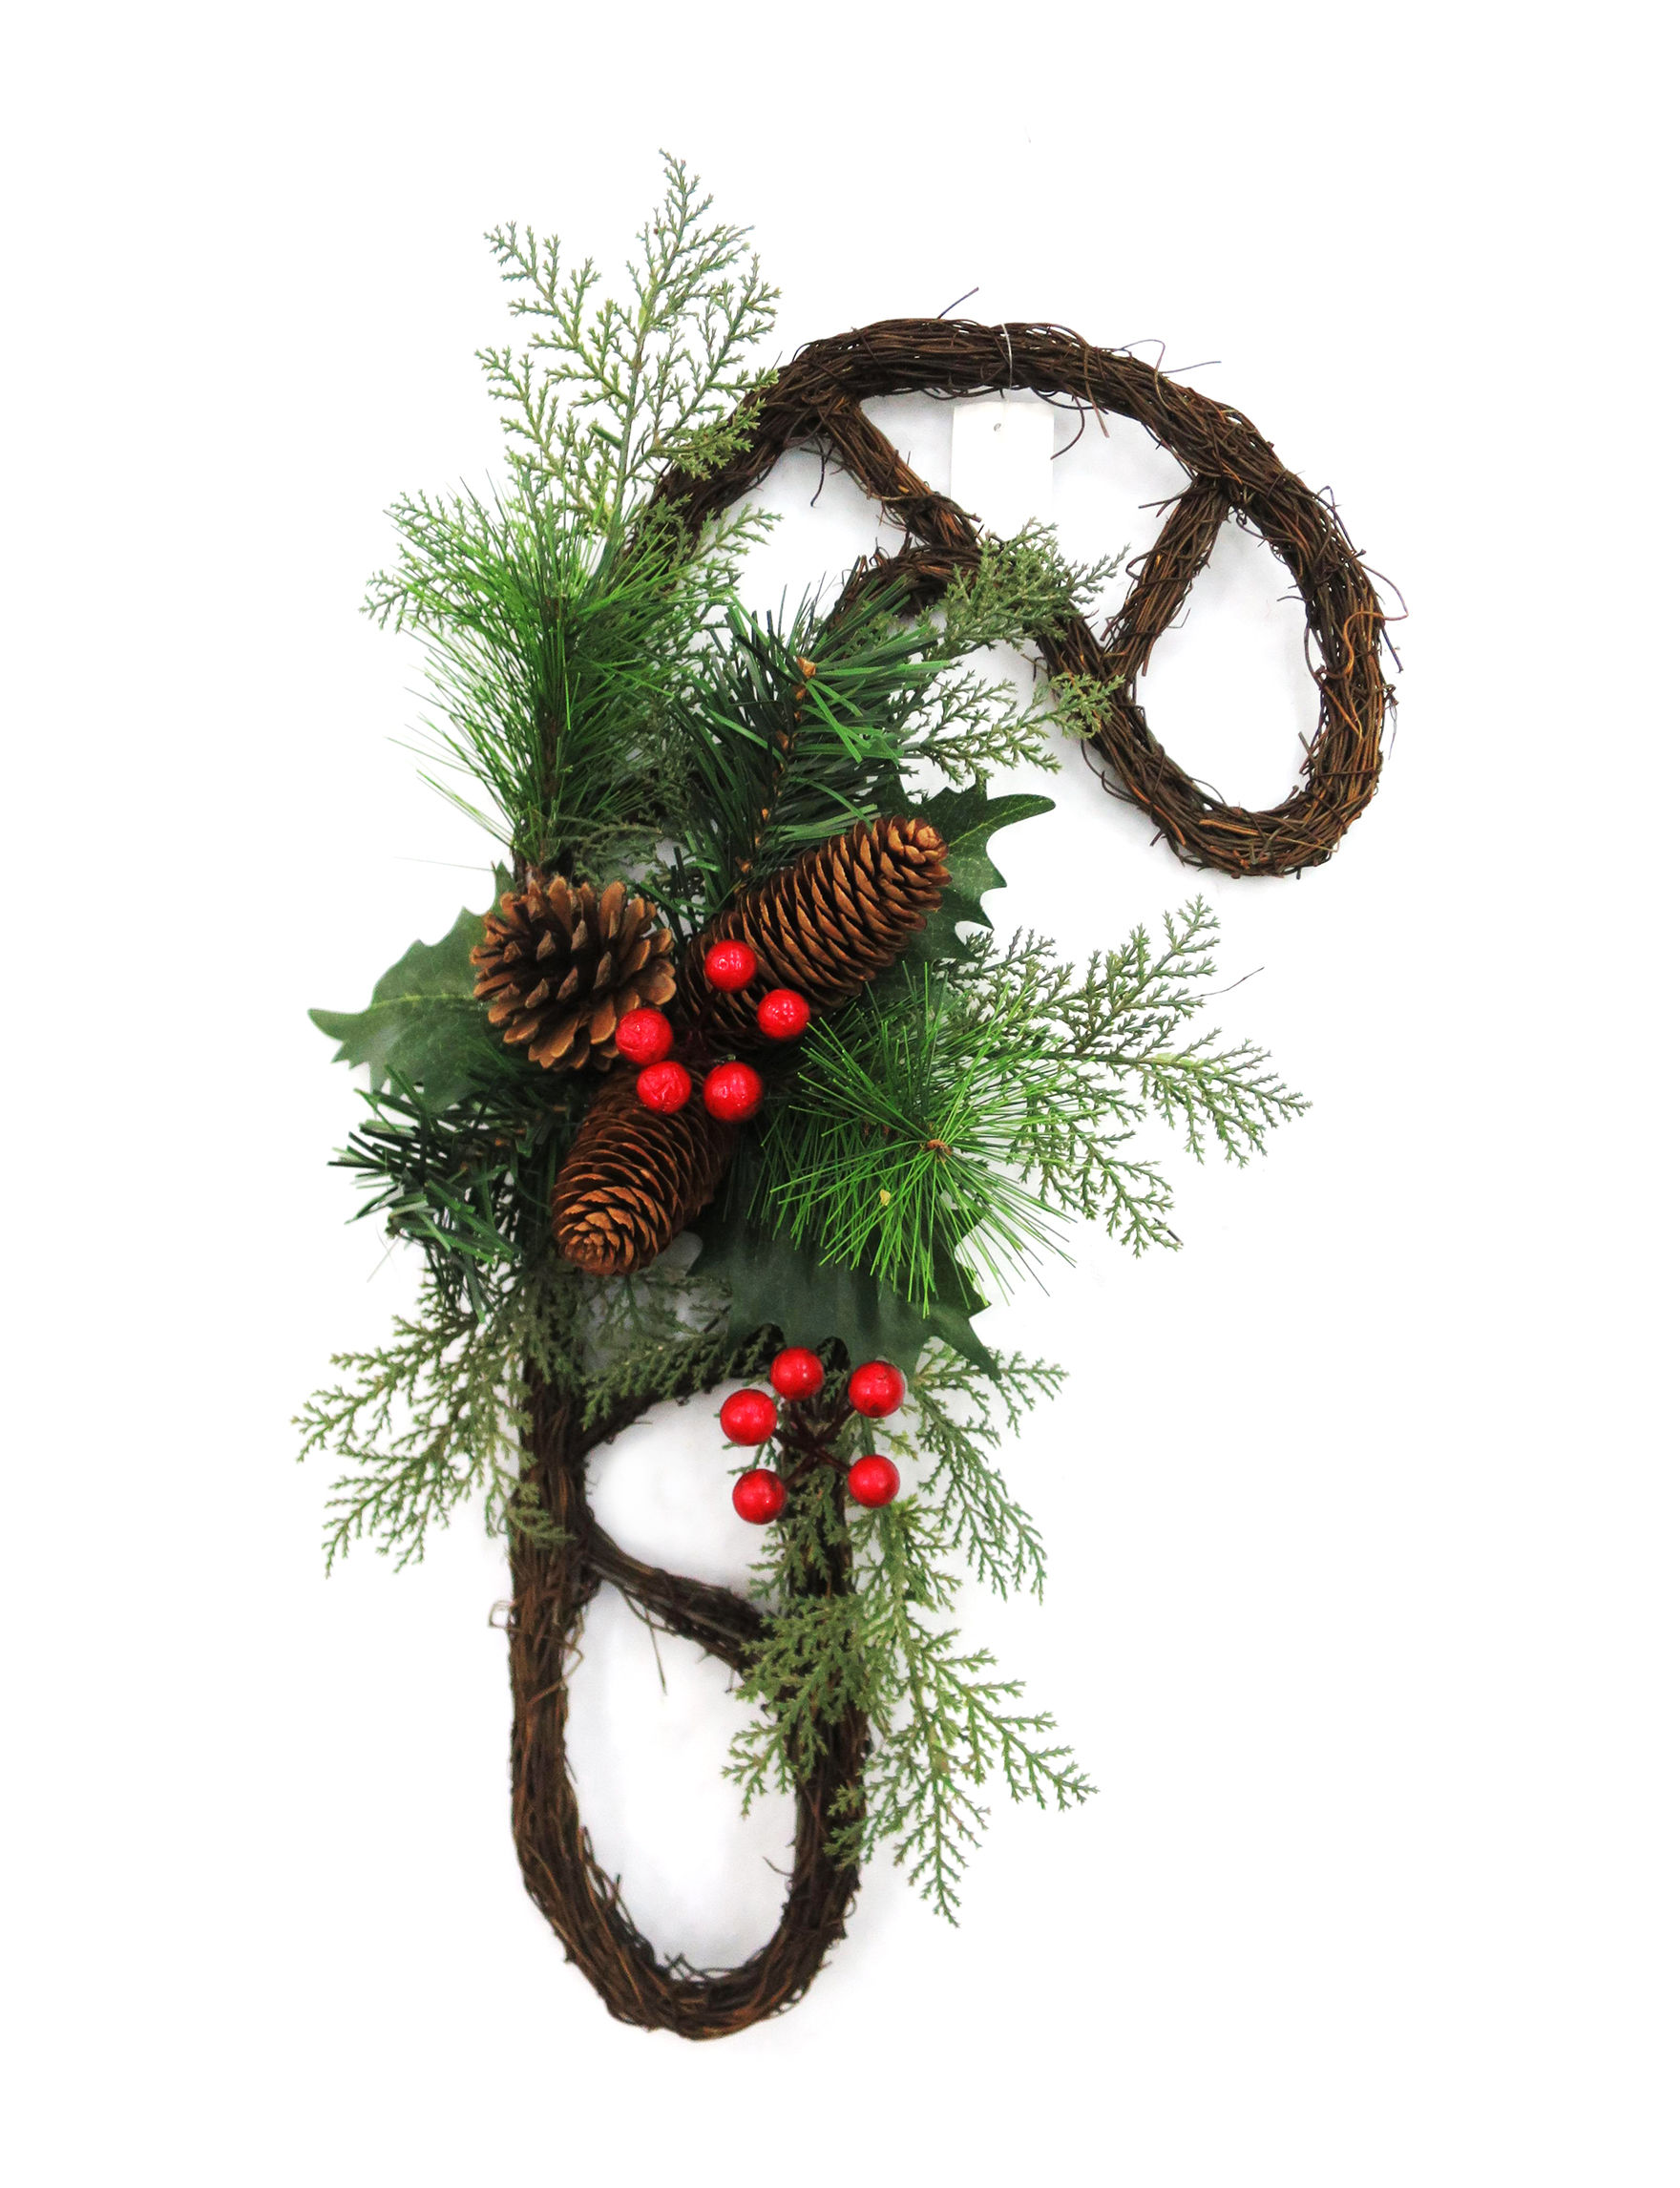 Evernoble Limit Brown / Green Wreaths & Garland Holiday Decor